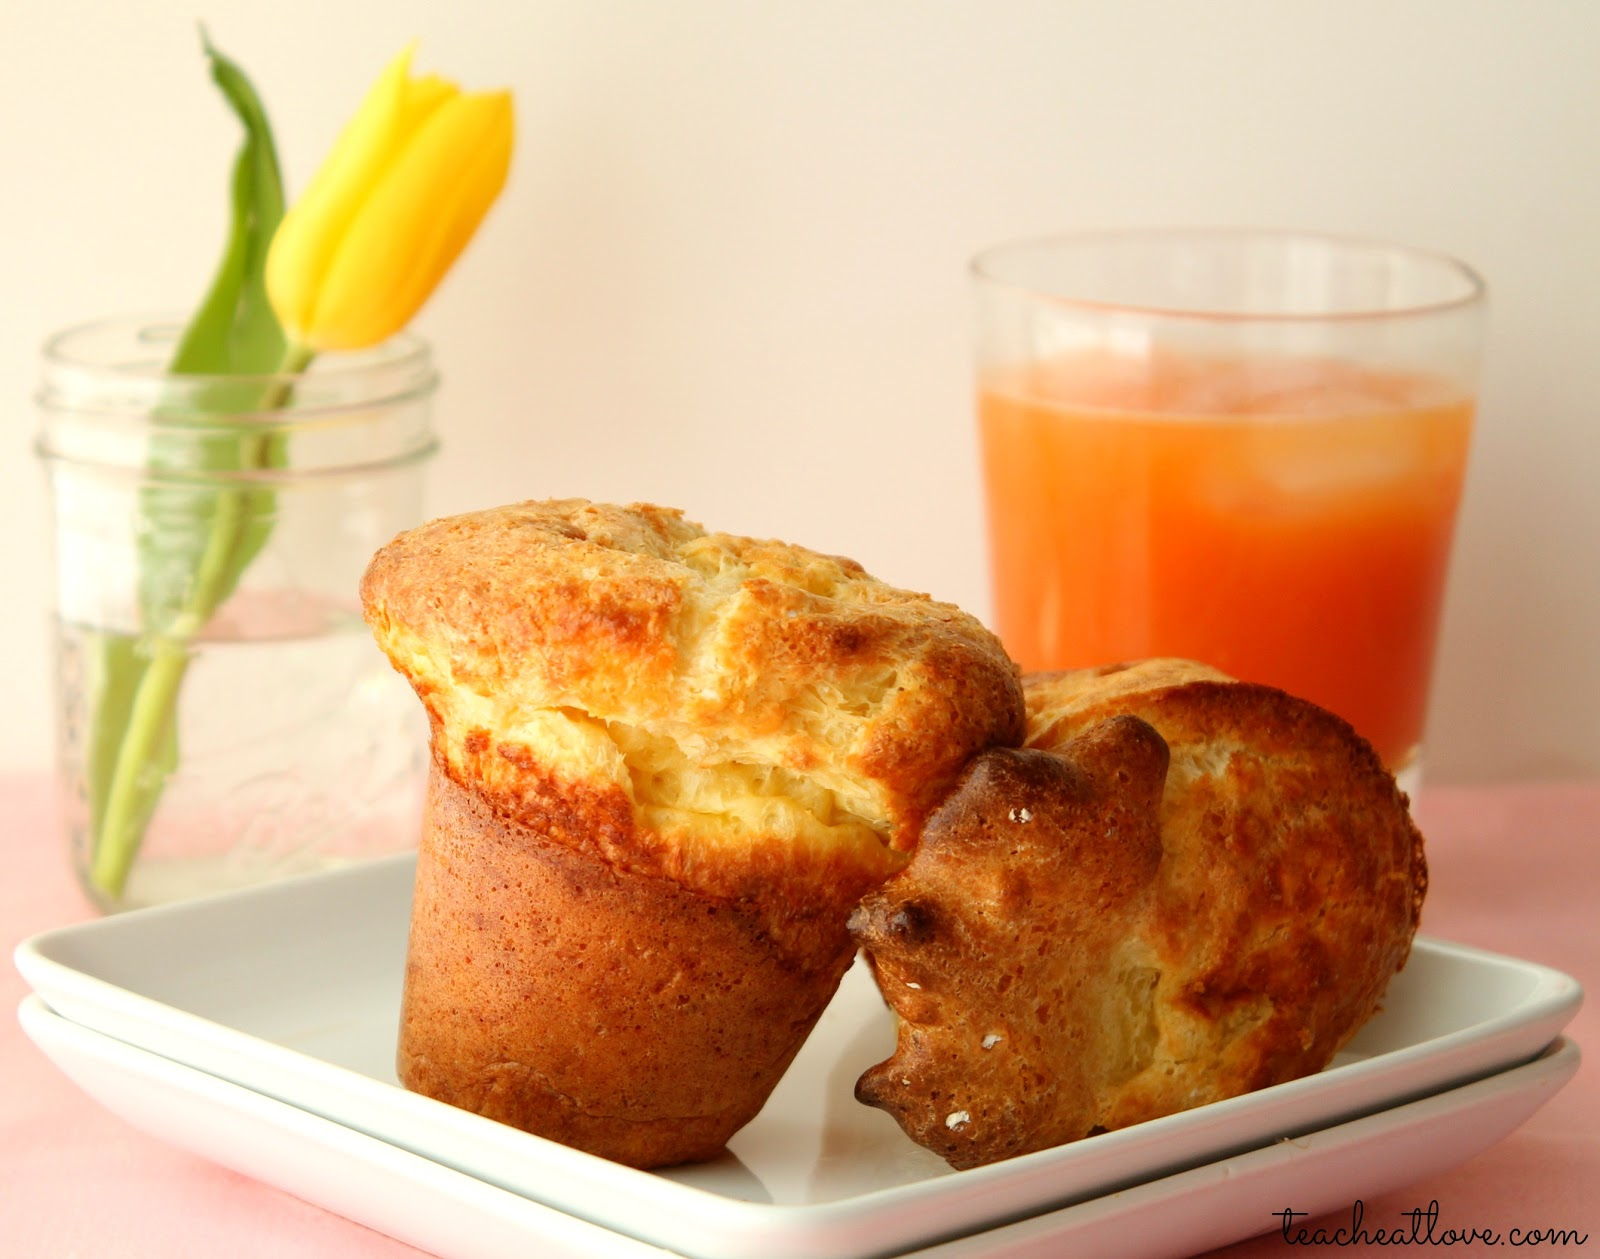 top of each popover to release steam and prevent sogginess and ...